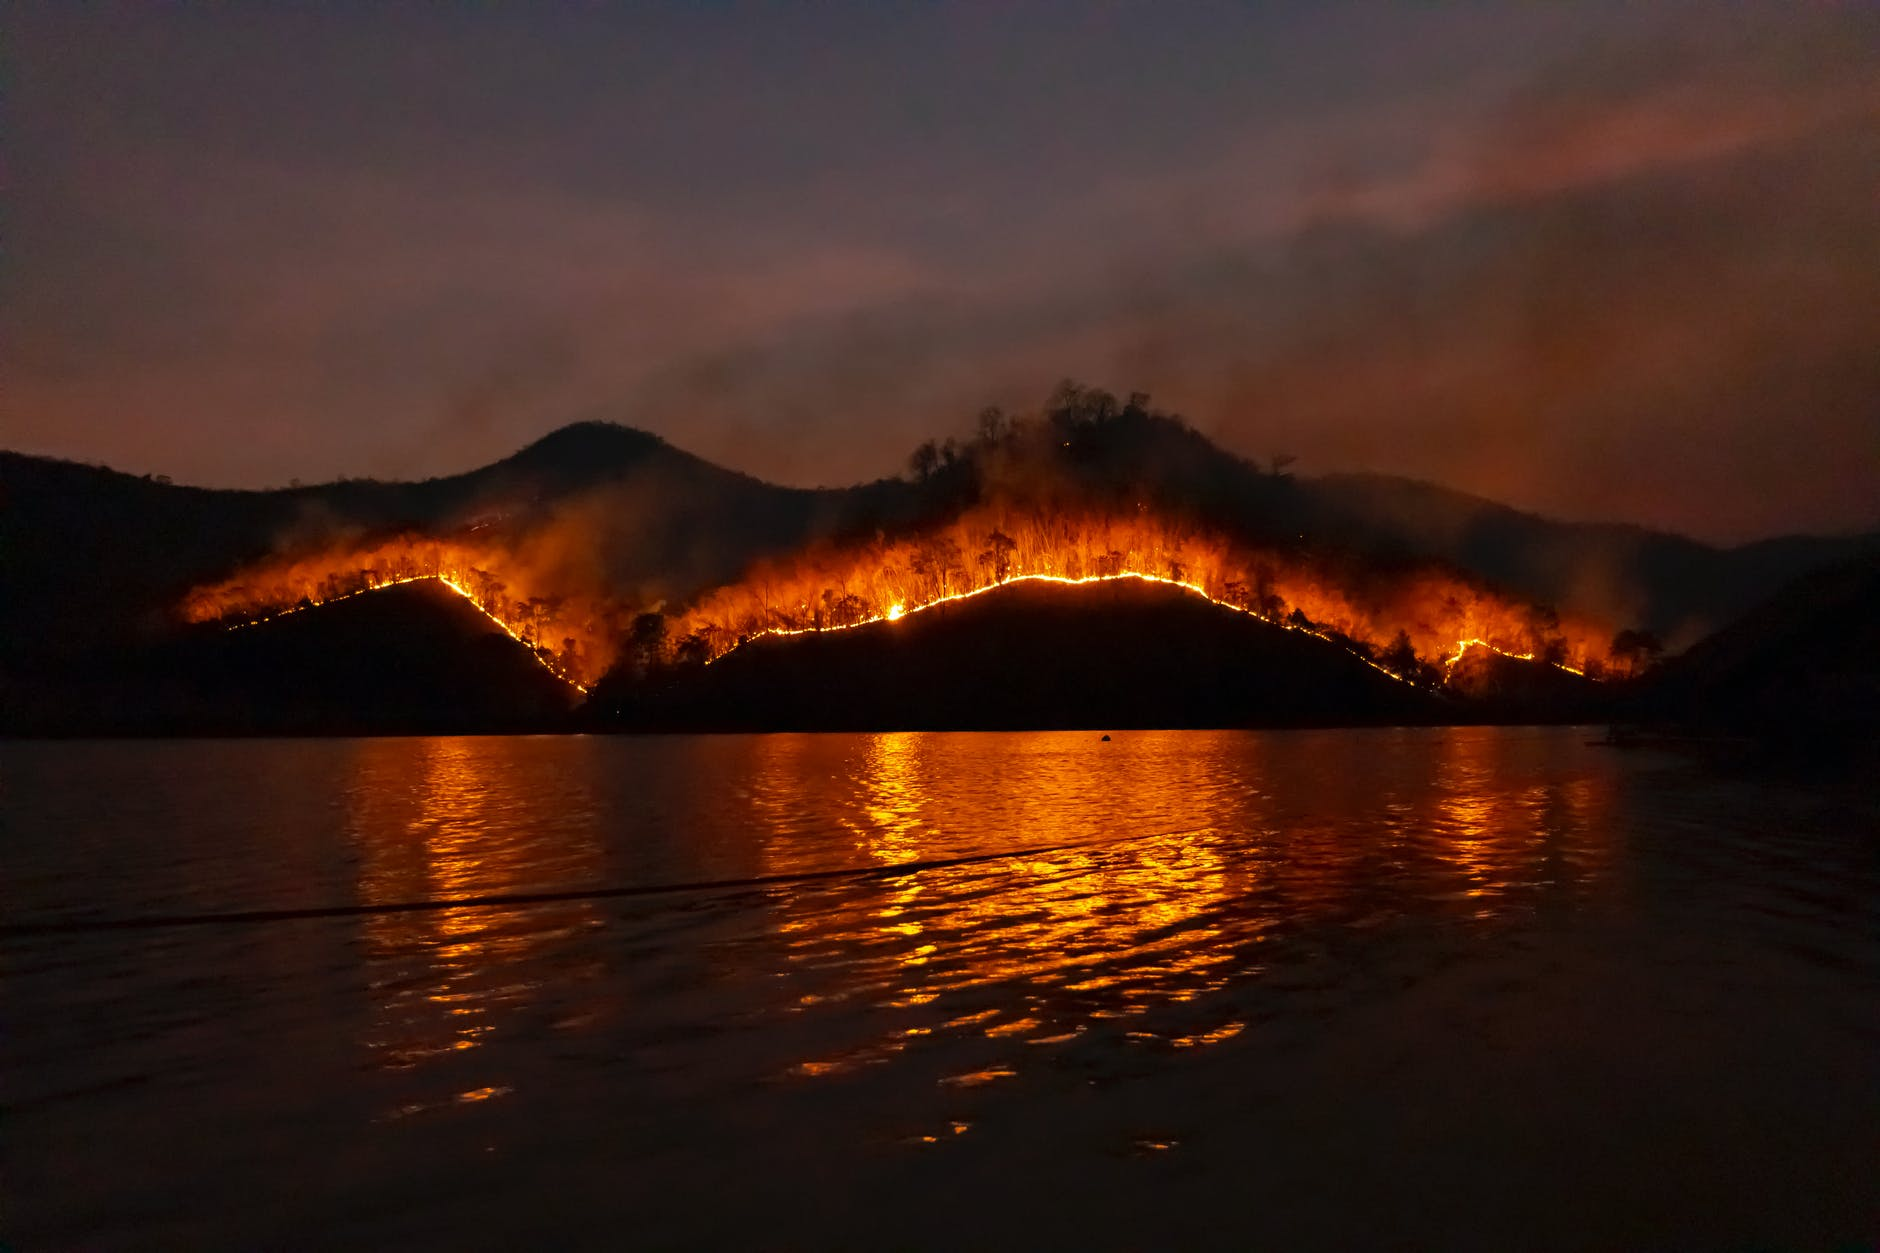 Things to Think about When We Think about Wildfires